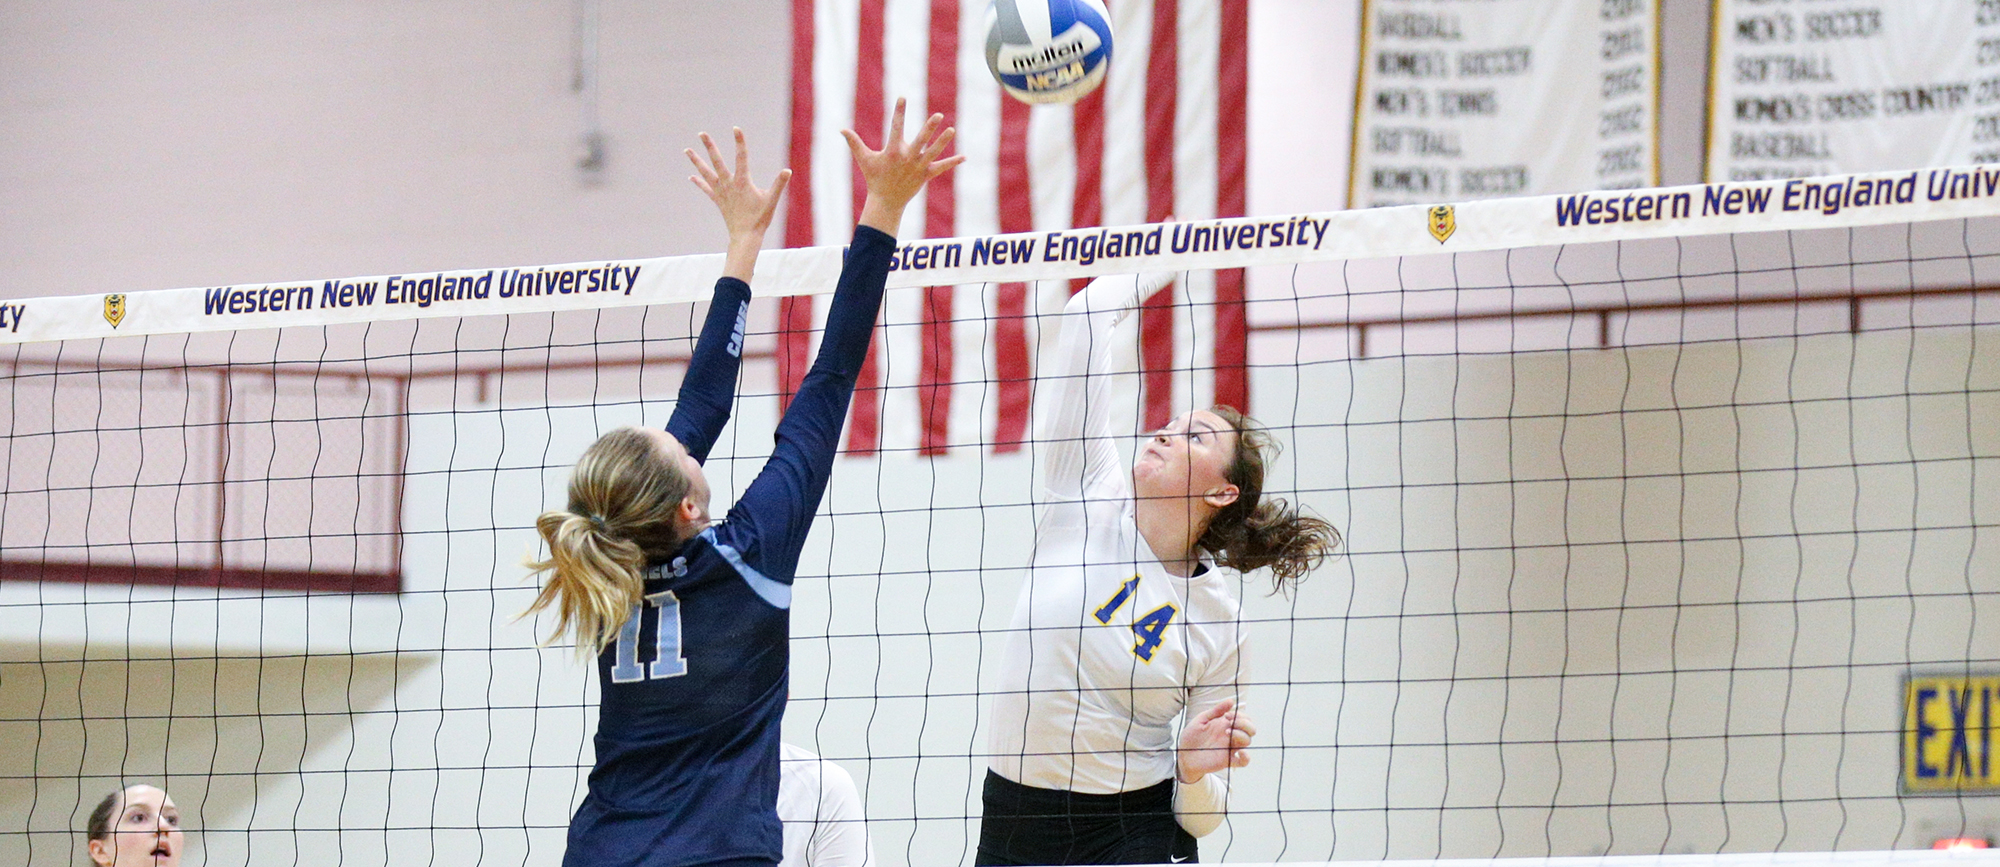 Senior Jenna Ferguson recorded a career-high 17 kills in Western New England's 3-1 win at UNE on Saturday. (Photo by Chris Marion)